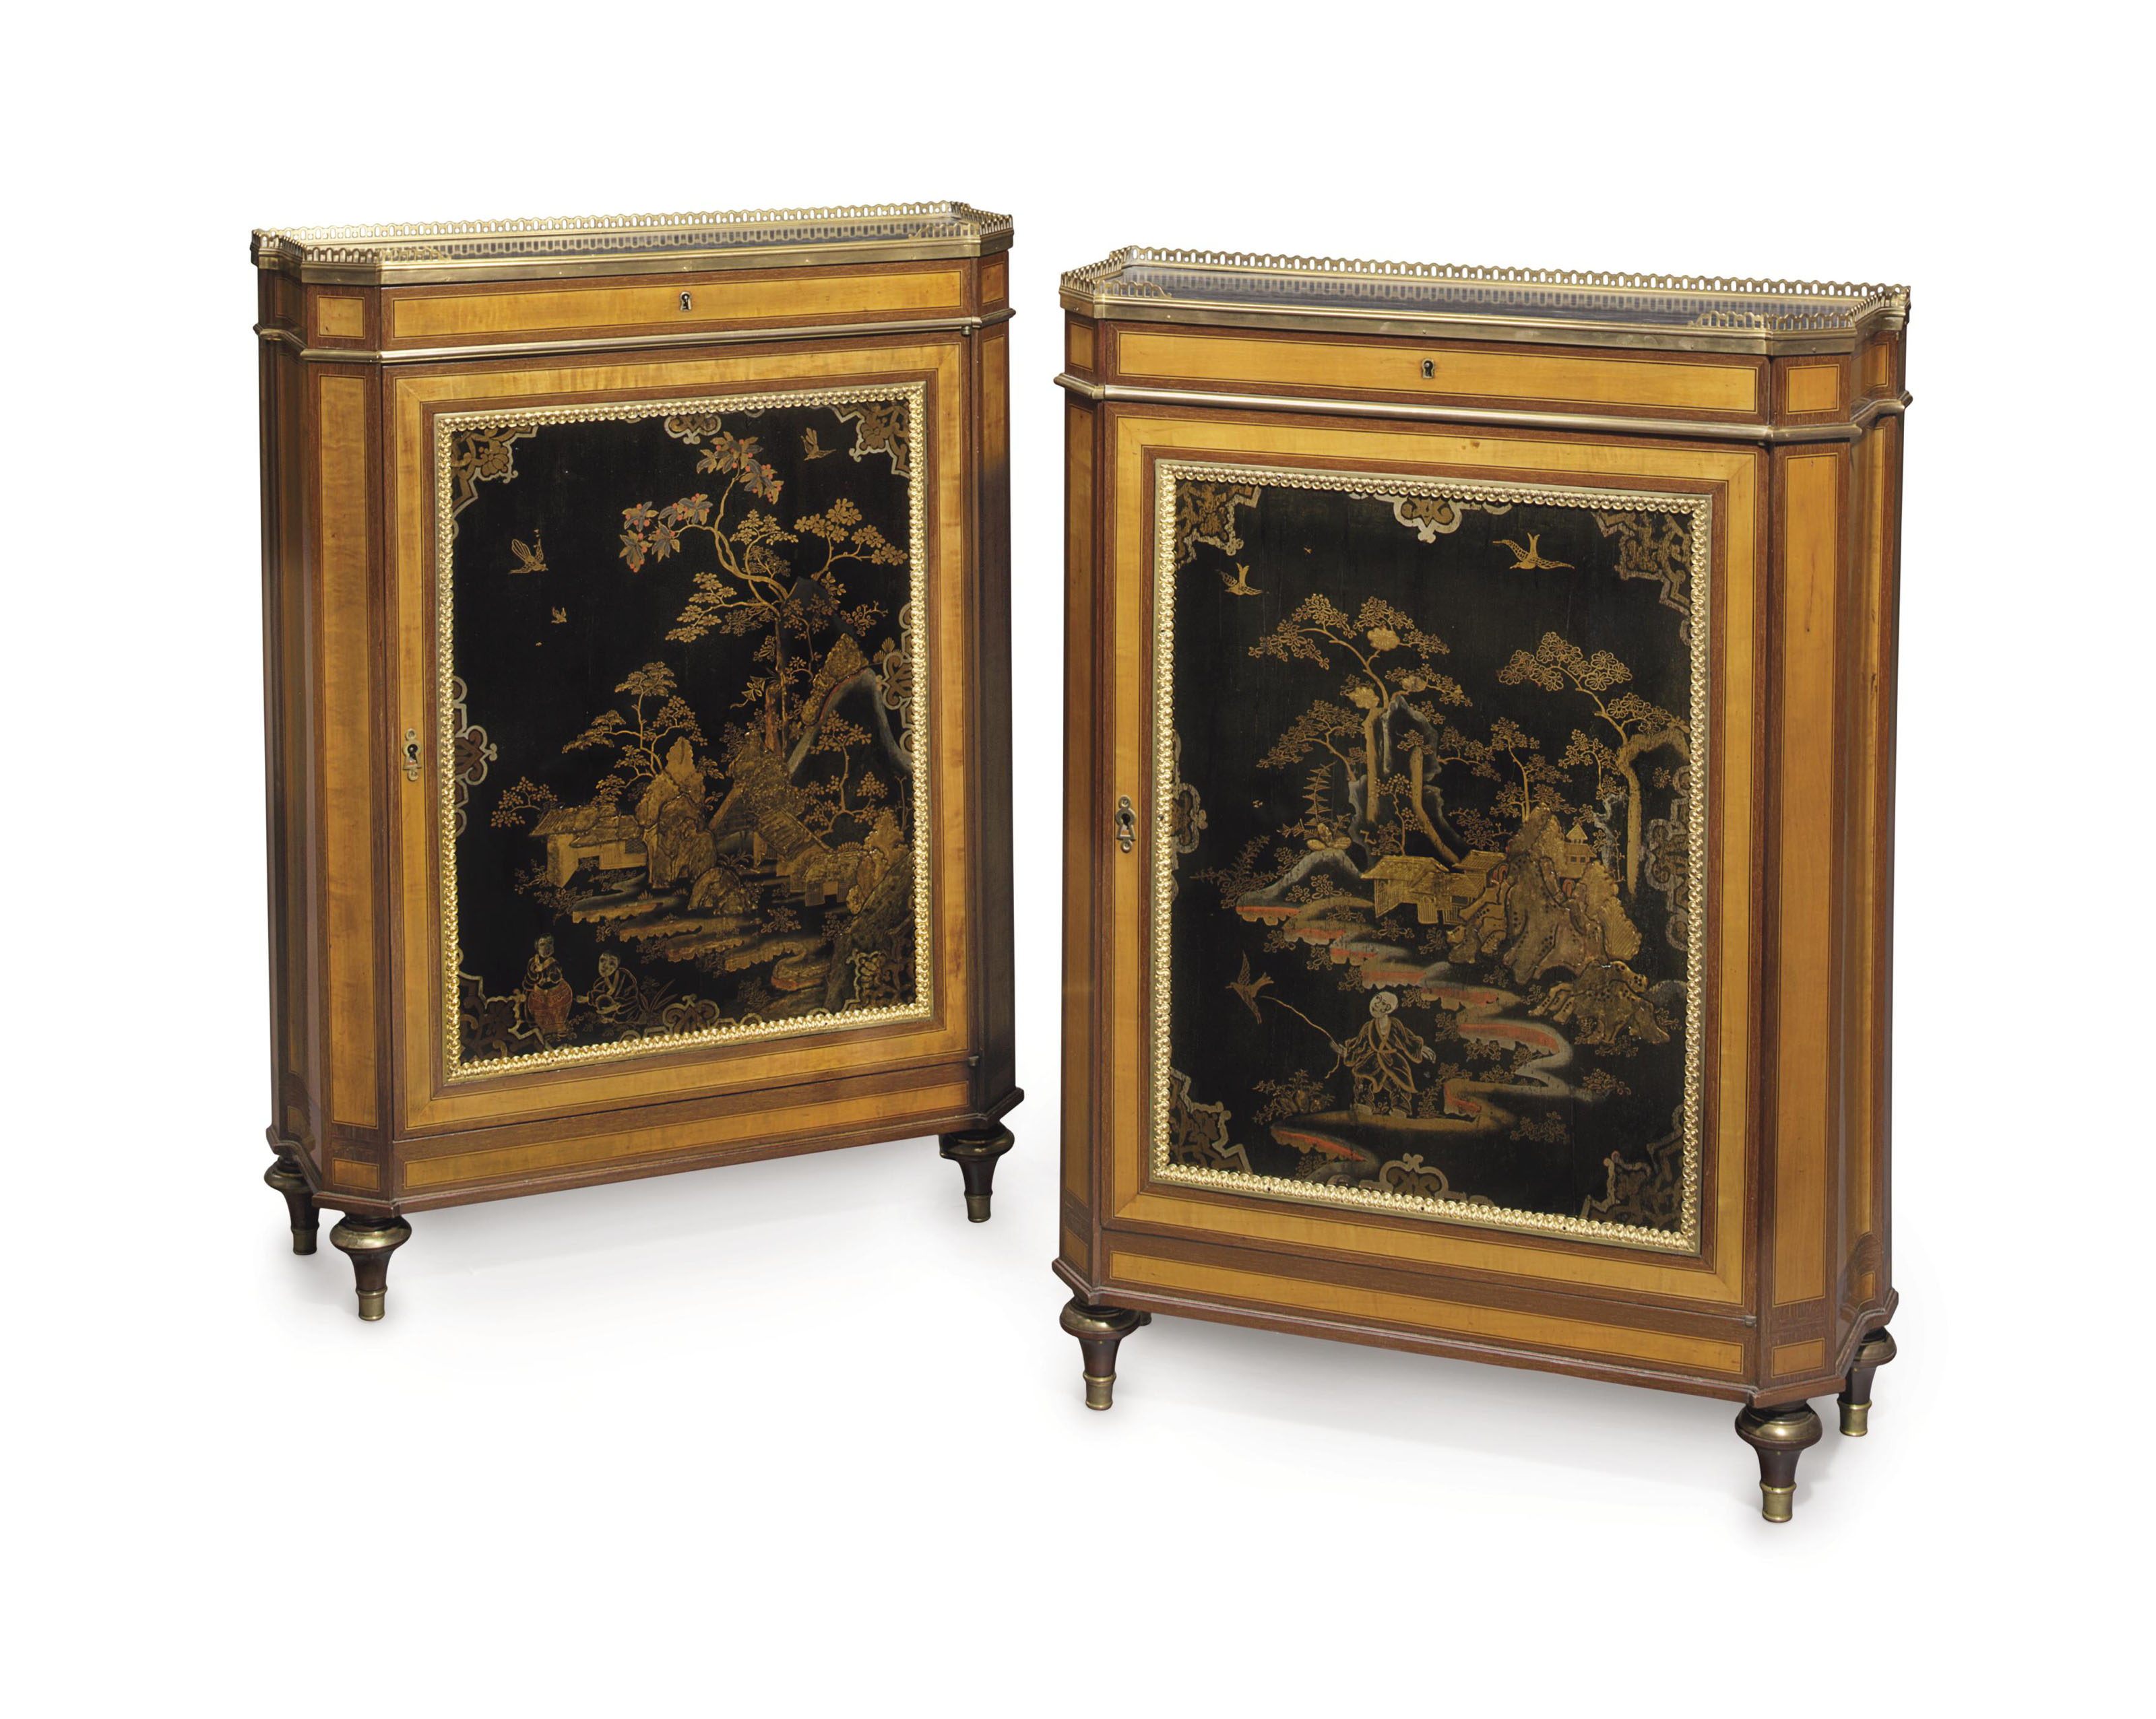 A PAIR OF FRENCH ORMOLU-MOUNTED SATINWOOD, AMARANTH AND POLYCHROME-LACQUERED SIDE CABINETS